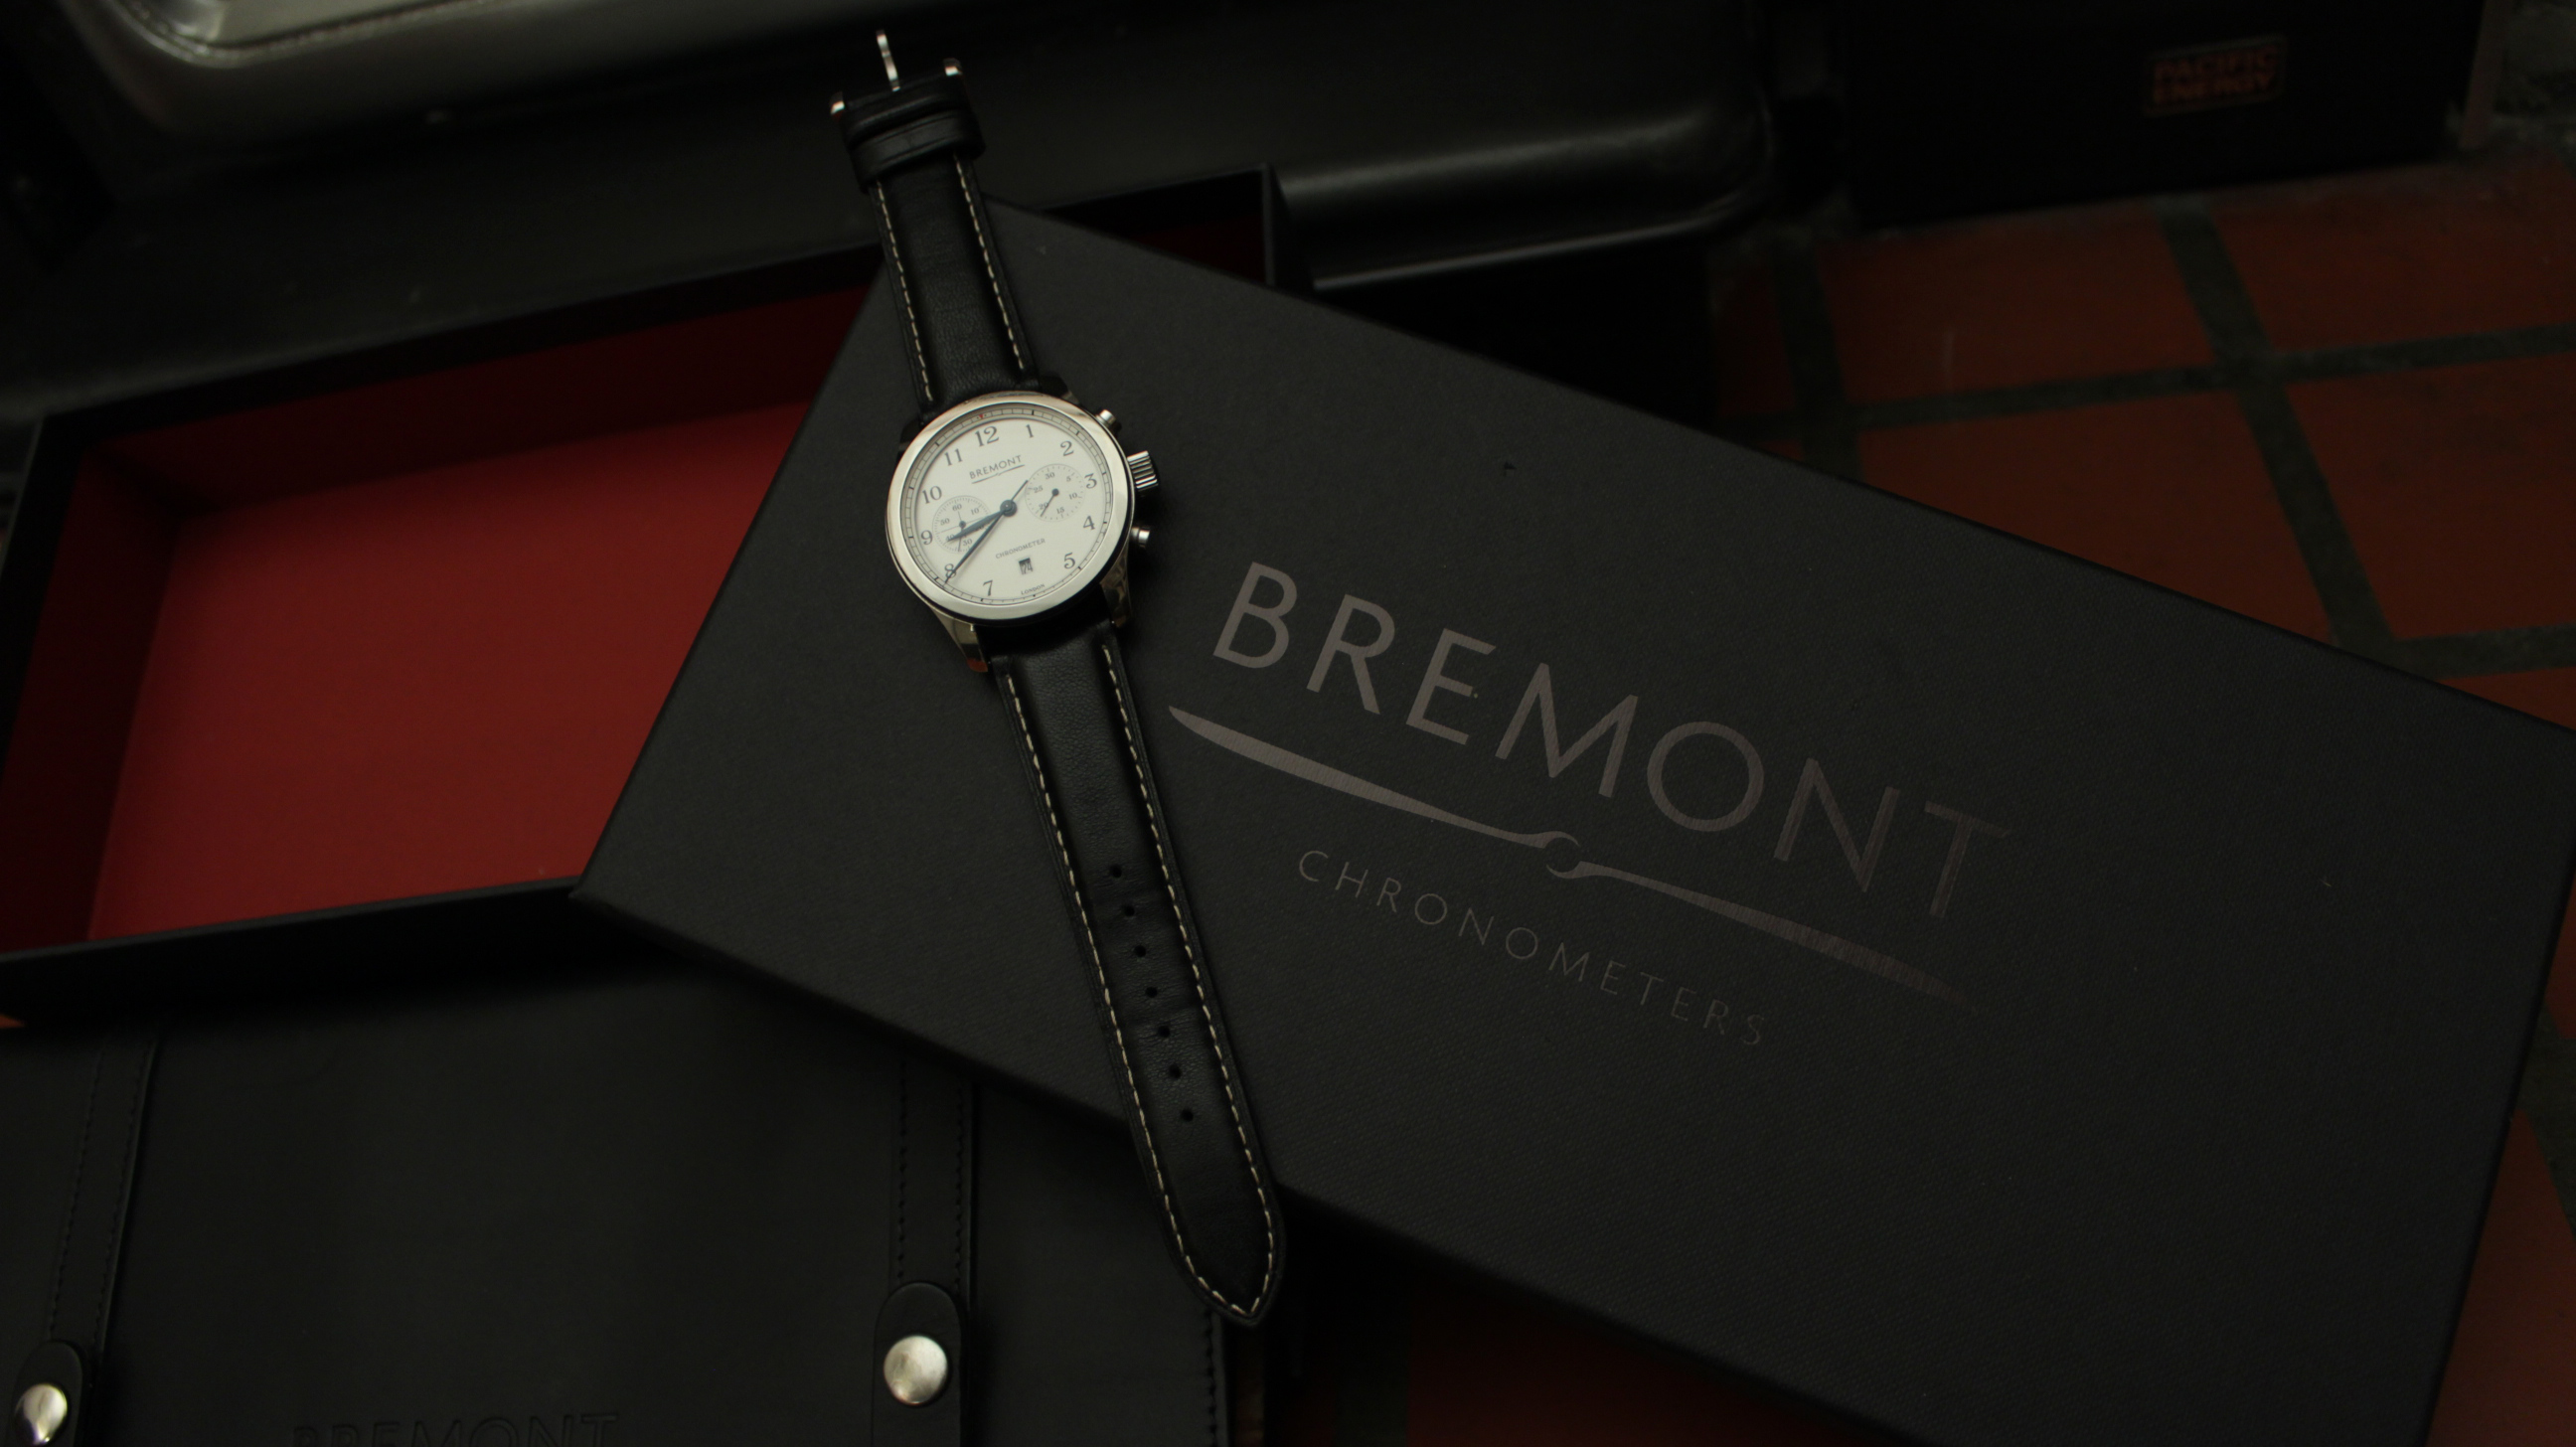 Bremont ALT1-C Watch Review